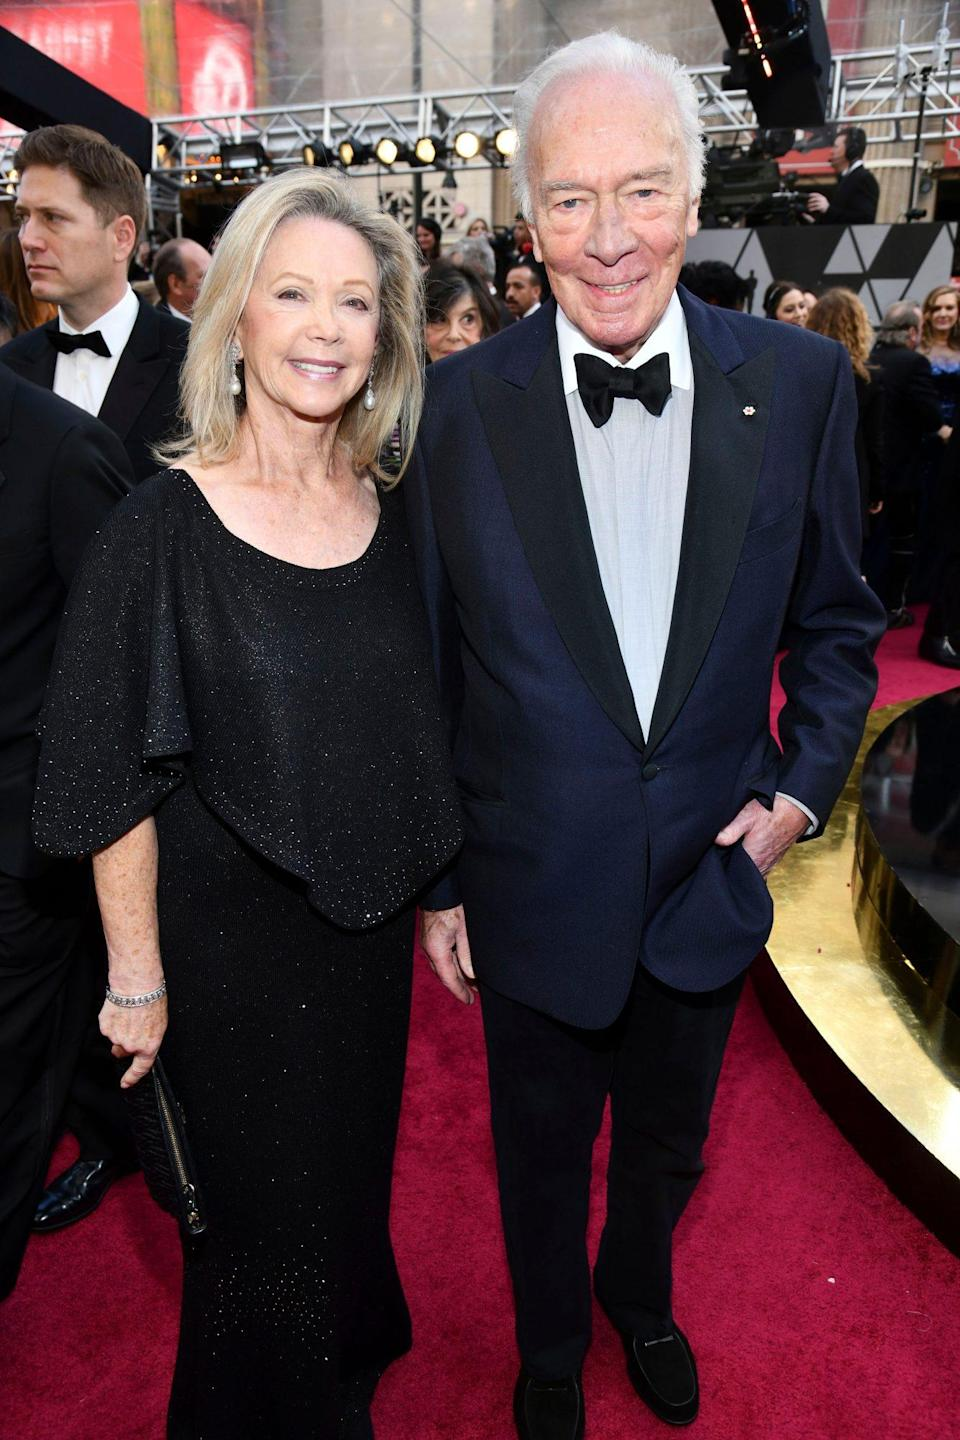 """<p>In the late 1960s, Plummer began work on <i>Lock Up Your Daughters</i>. In the cast was Elaine Taylor, a 25-year-old actress who caught his eye. Recalled Elaine of their early courtship: """"I thought he was extremely selfish and conceited, but he made me laugh. And he did get the best tables at restaurants."""" They wed in 1970.</p>"""